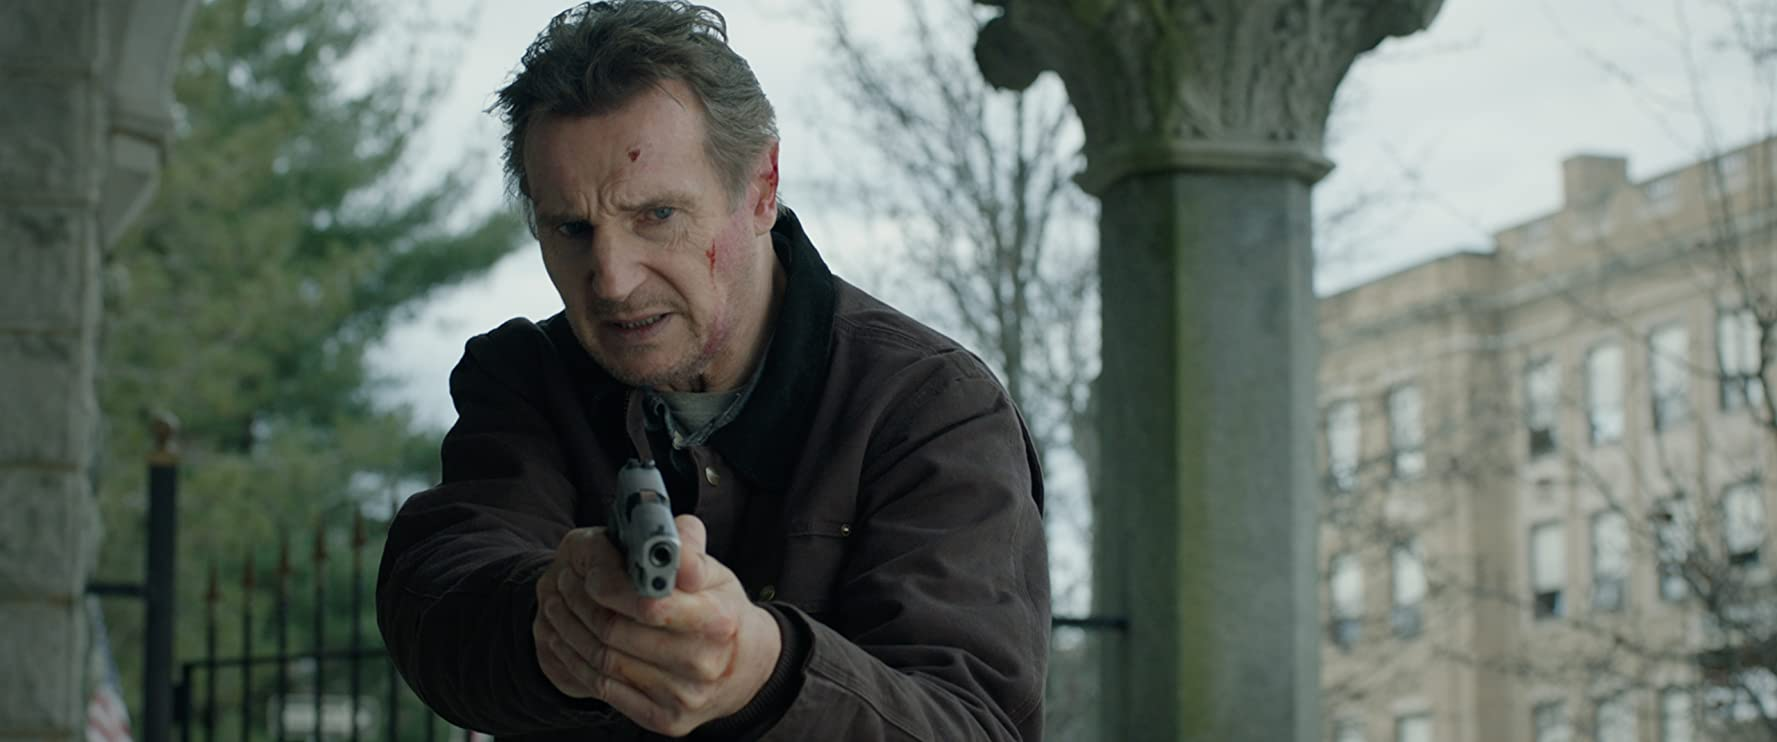 Liam Neeson in Honest Thief (2020)